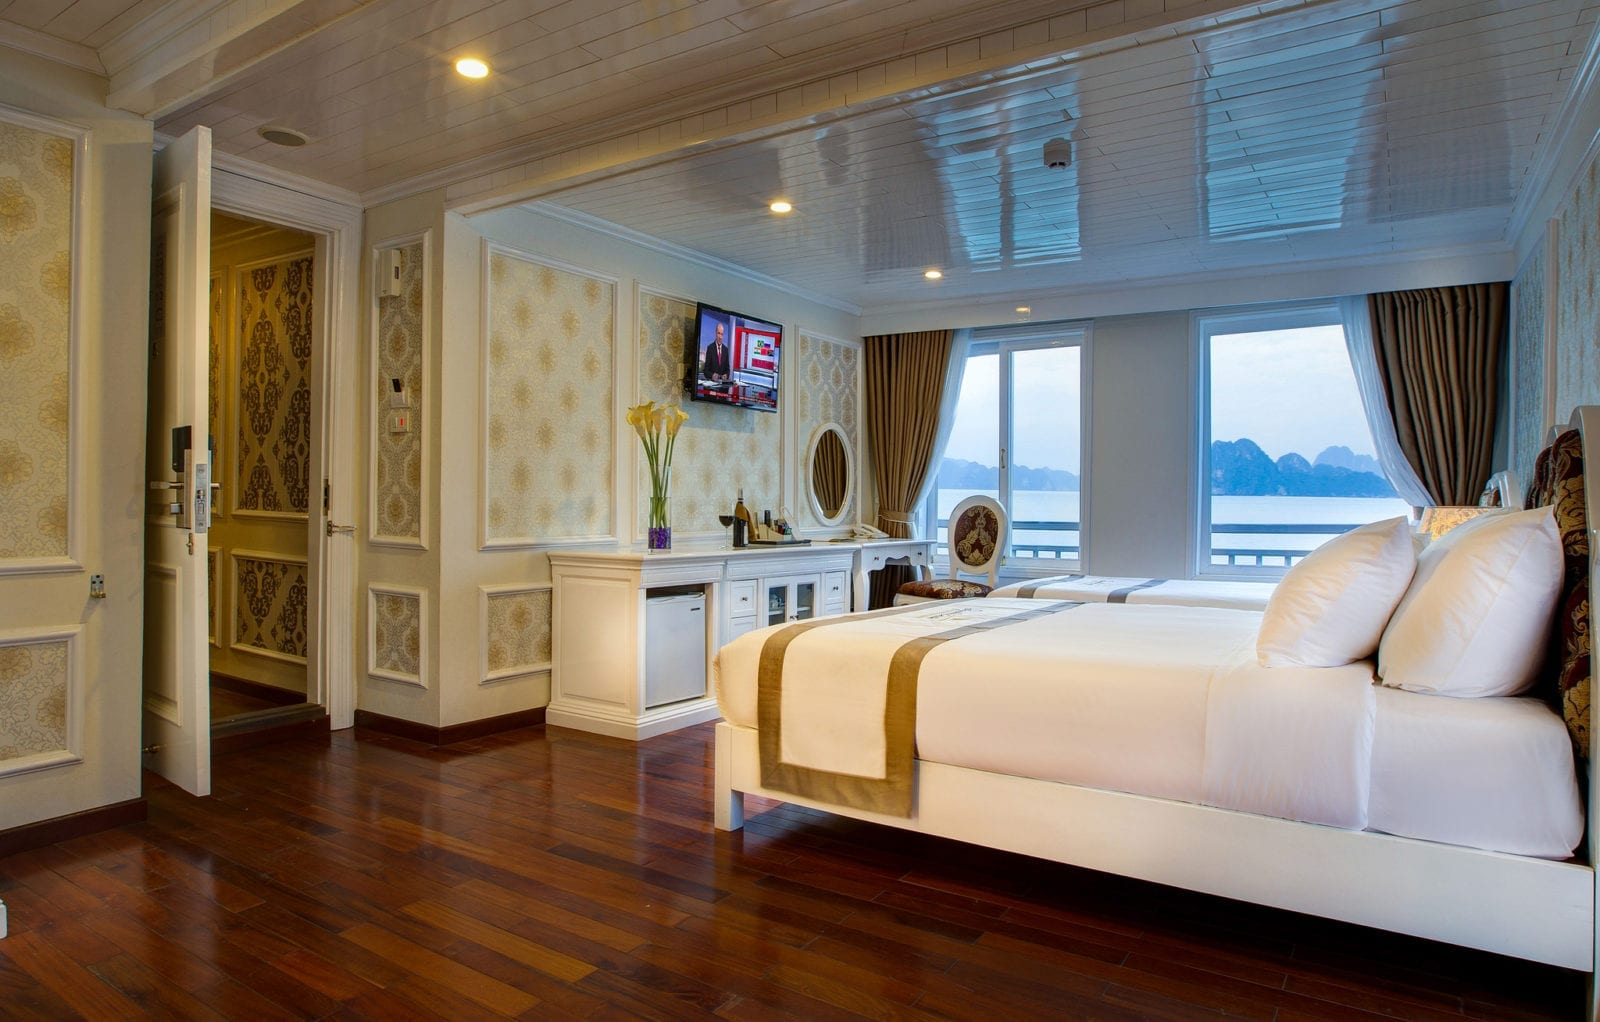 Room at Signature Royal Halong Cruise